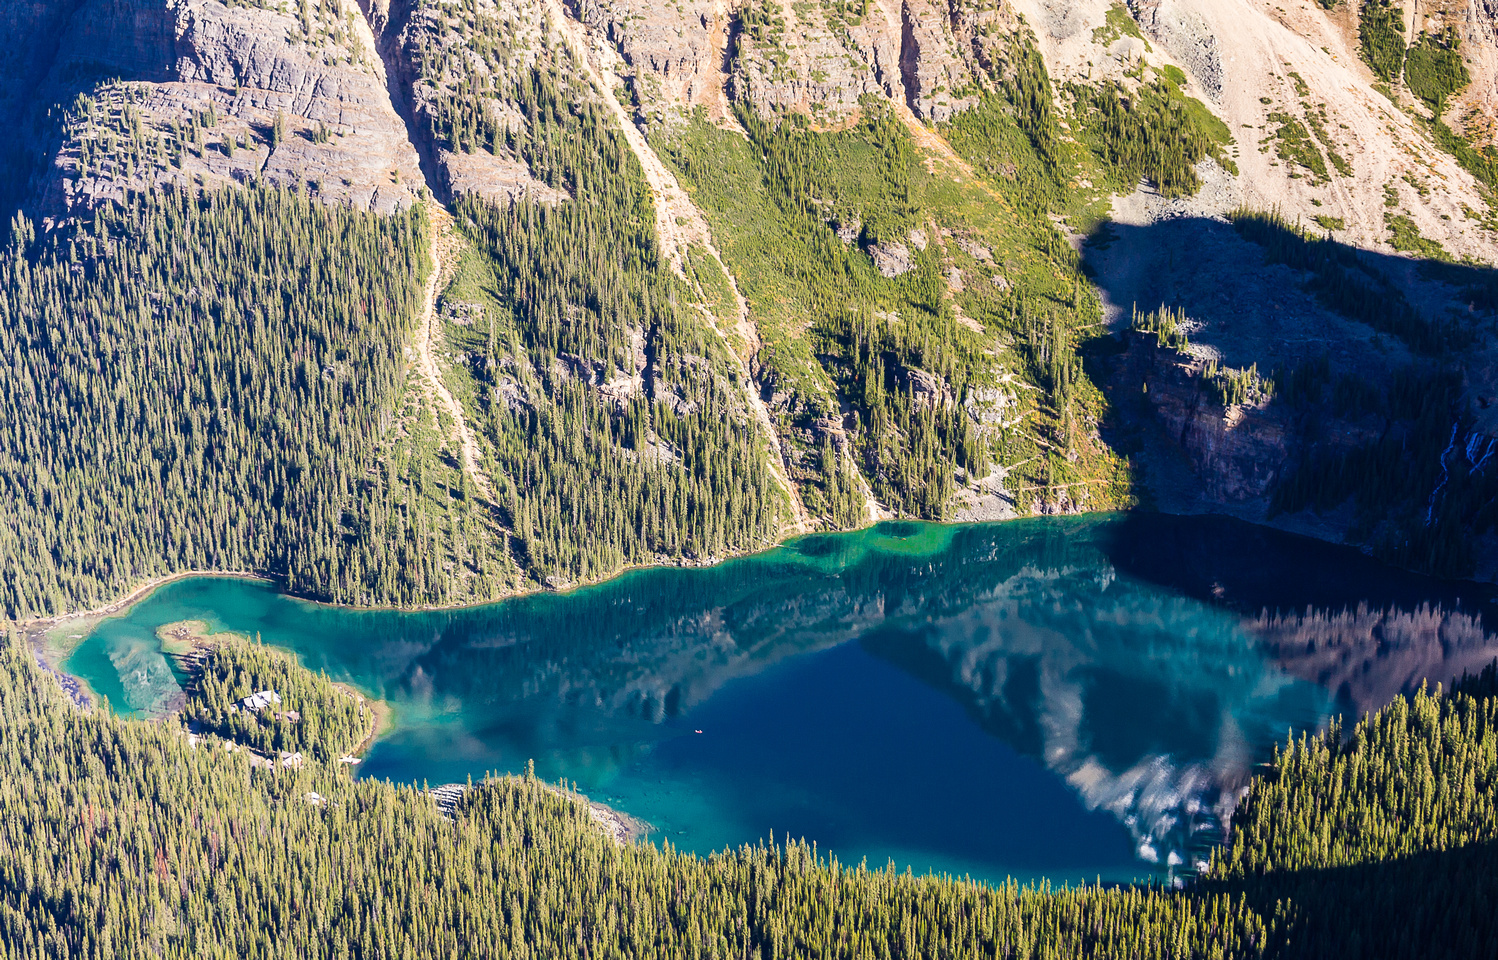 A long way down to the sublime Lake O'Hara and it's lodge. A lone kayaker barely visible on the calm lake